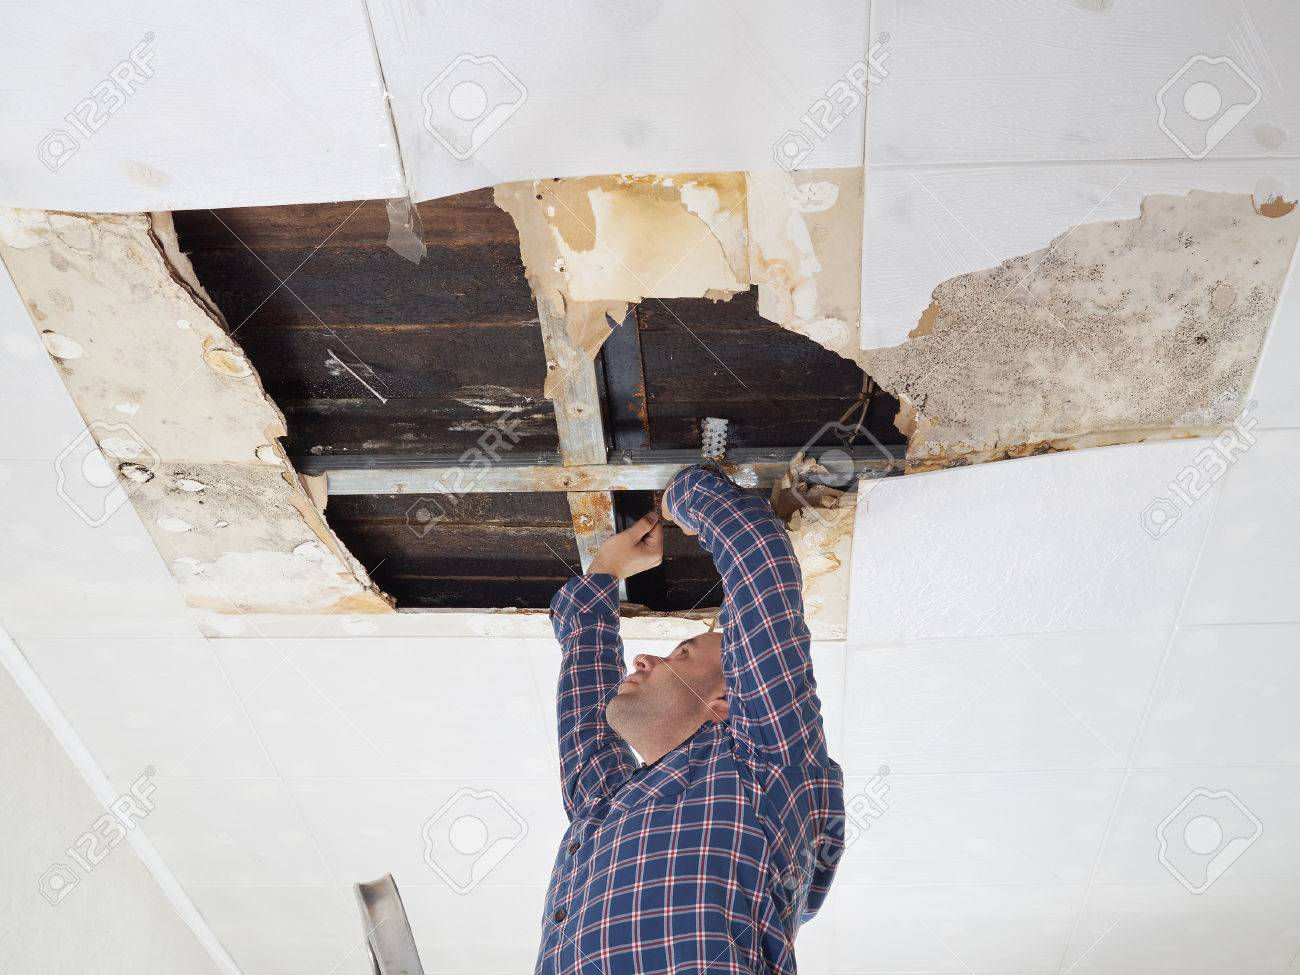 Man repairing collapsed ceiling. Ceiling panels damaged huge hole in roof from rainwater leakage.Water damaged ceiling . - 55750277